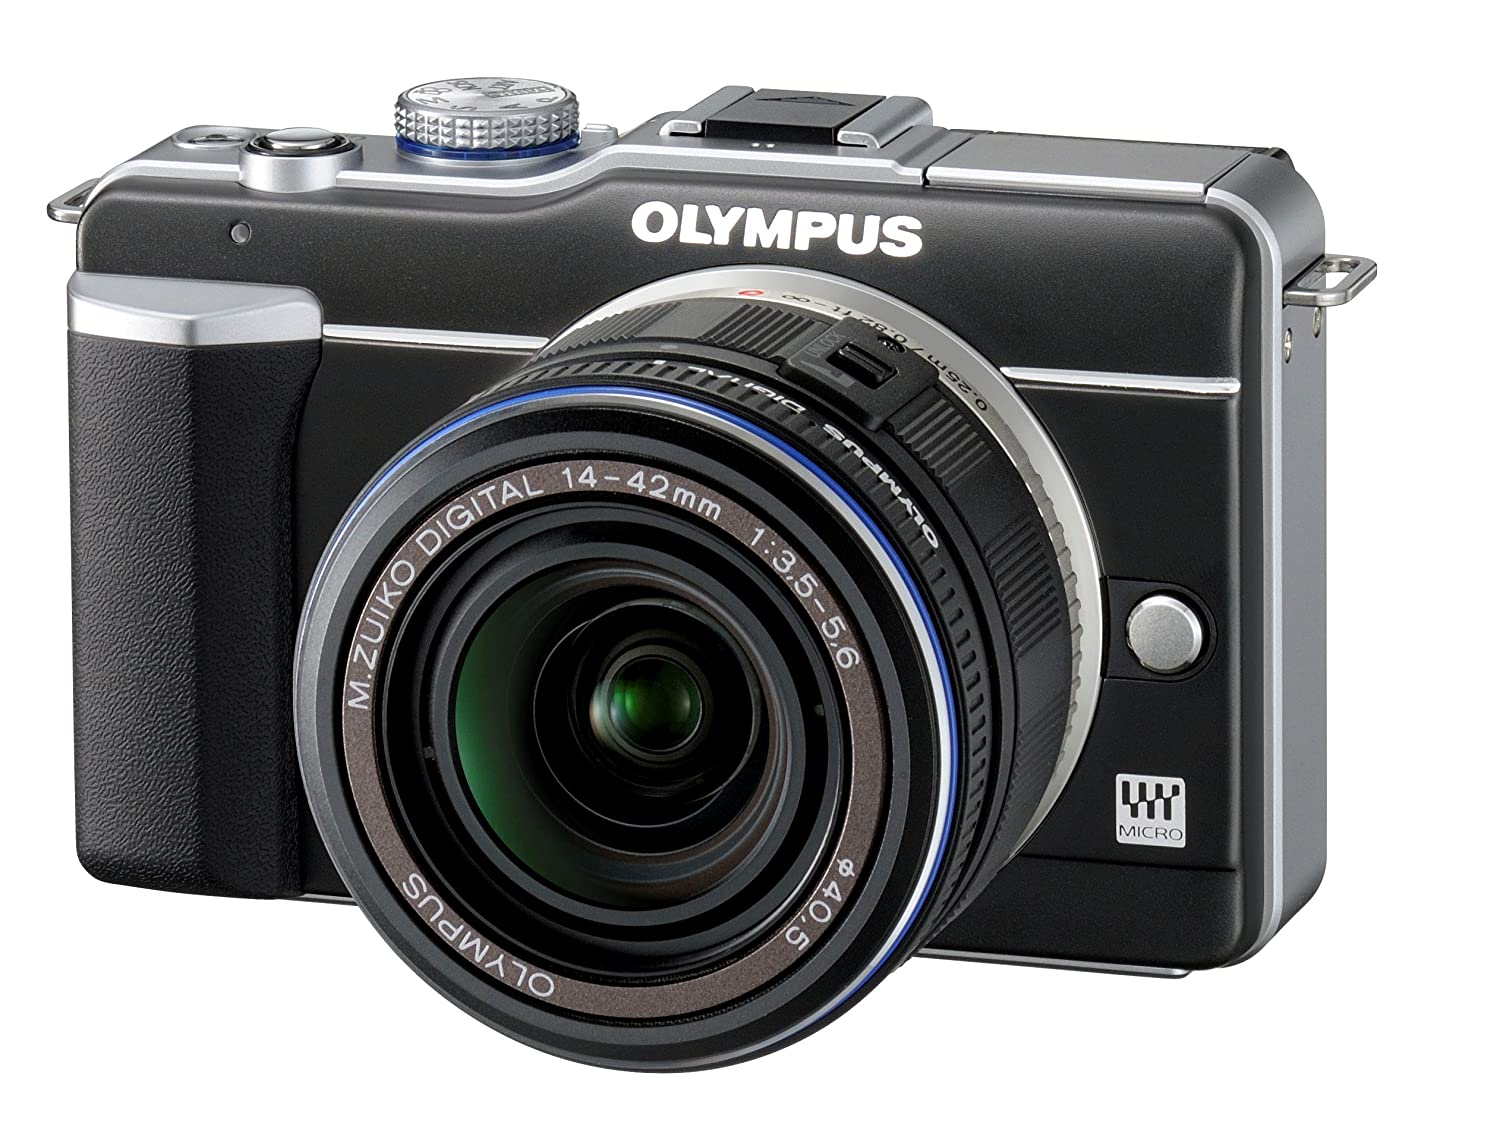 Olympus Pen E Pl1 123mp Live Mos Micro Four Thirds Oli Mpx 2 Mirrorless Digital Camera With 14 42mm F 35 56 Zuiko Zoom Lens Black